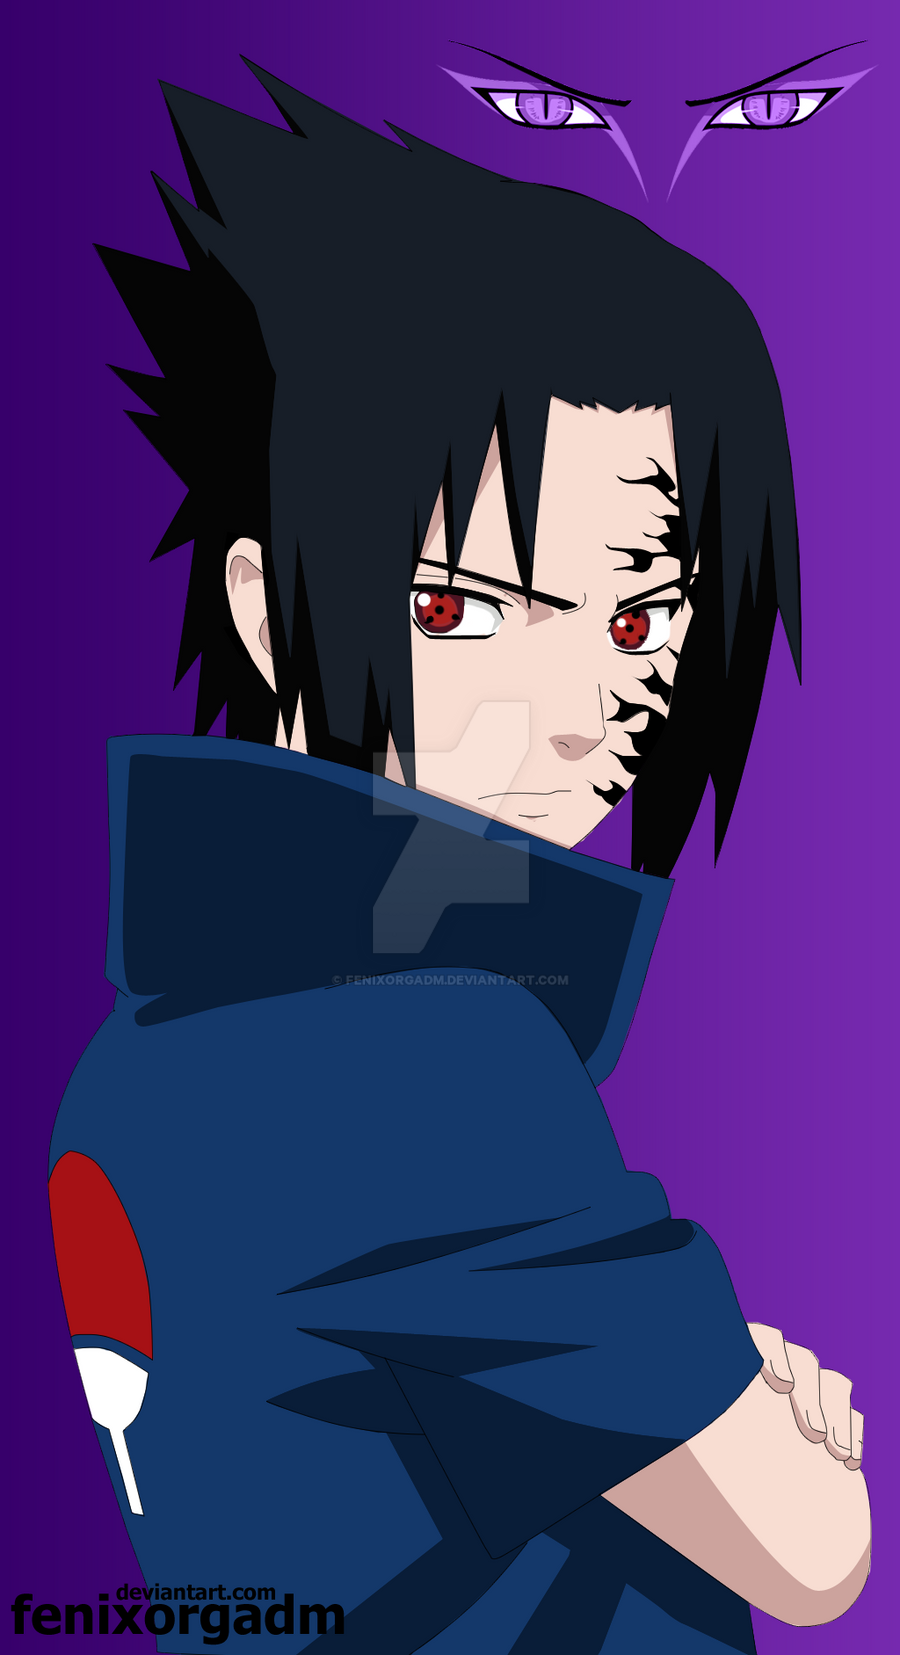 Sasuke Uchiha Curse Mark by fenixorgadm on DeviantArt